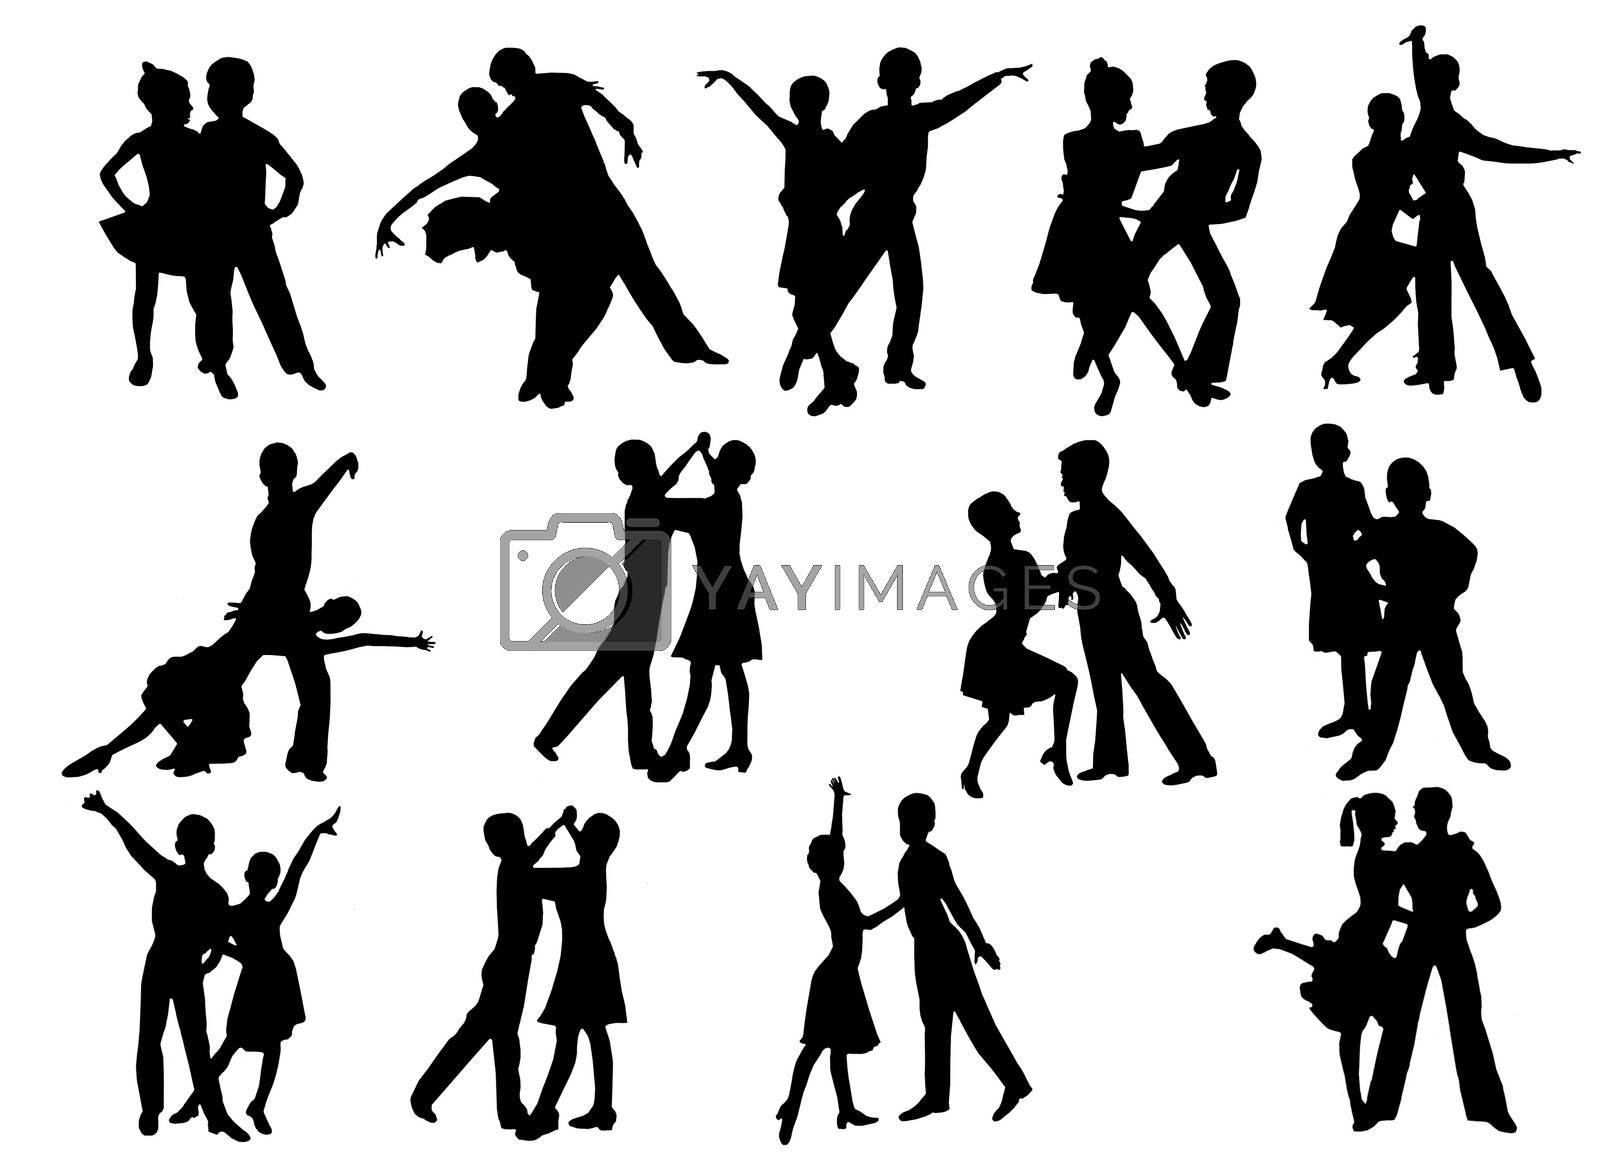 Silhouettes of dancing people by alexmak